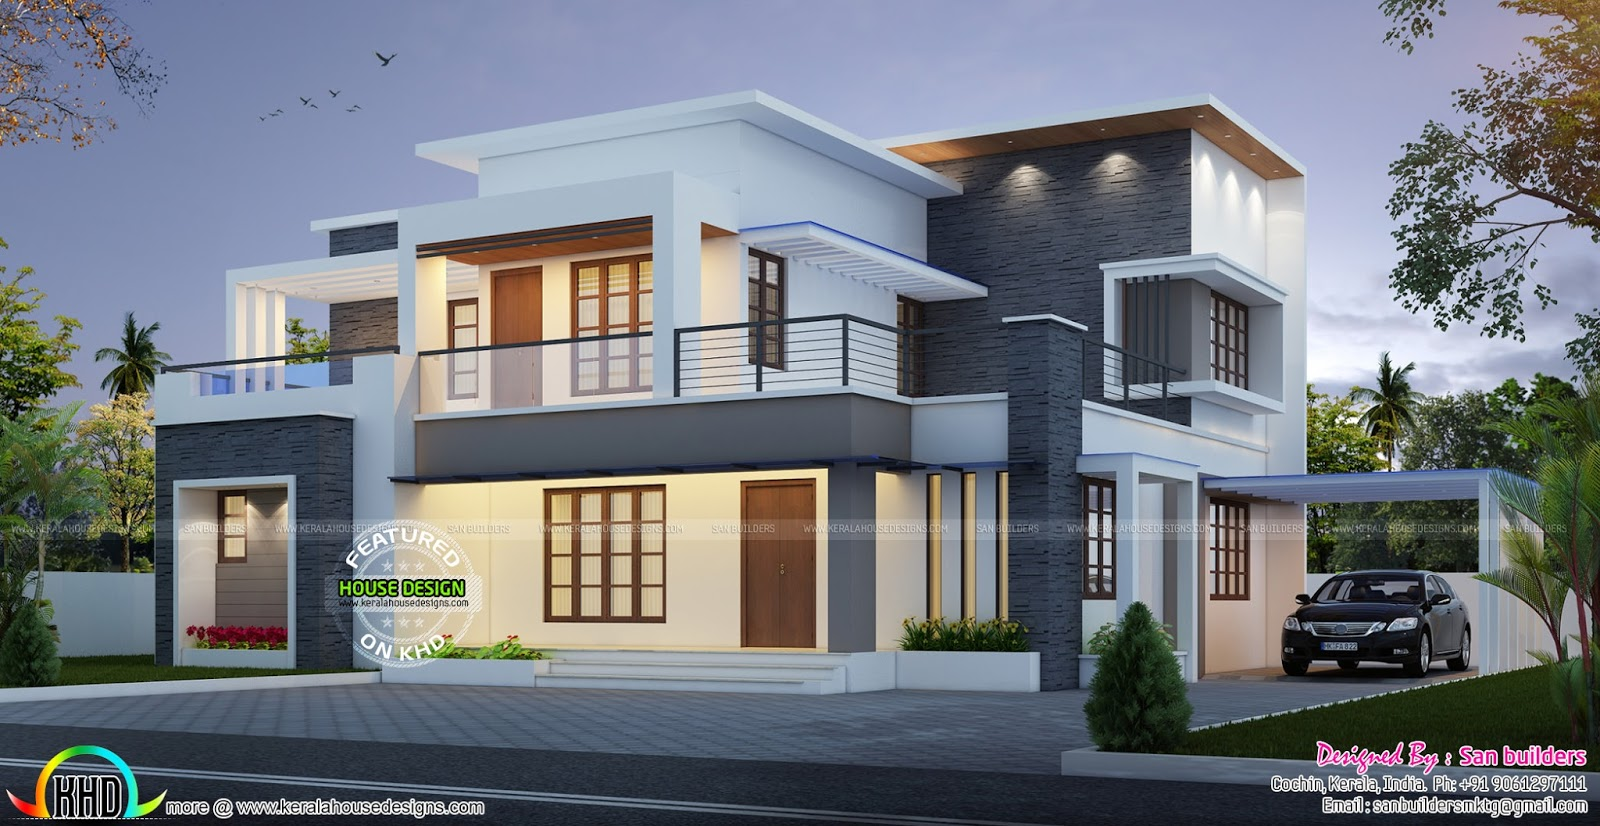 House plan and elevation by san builders kerala home for Model house design 2016